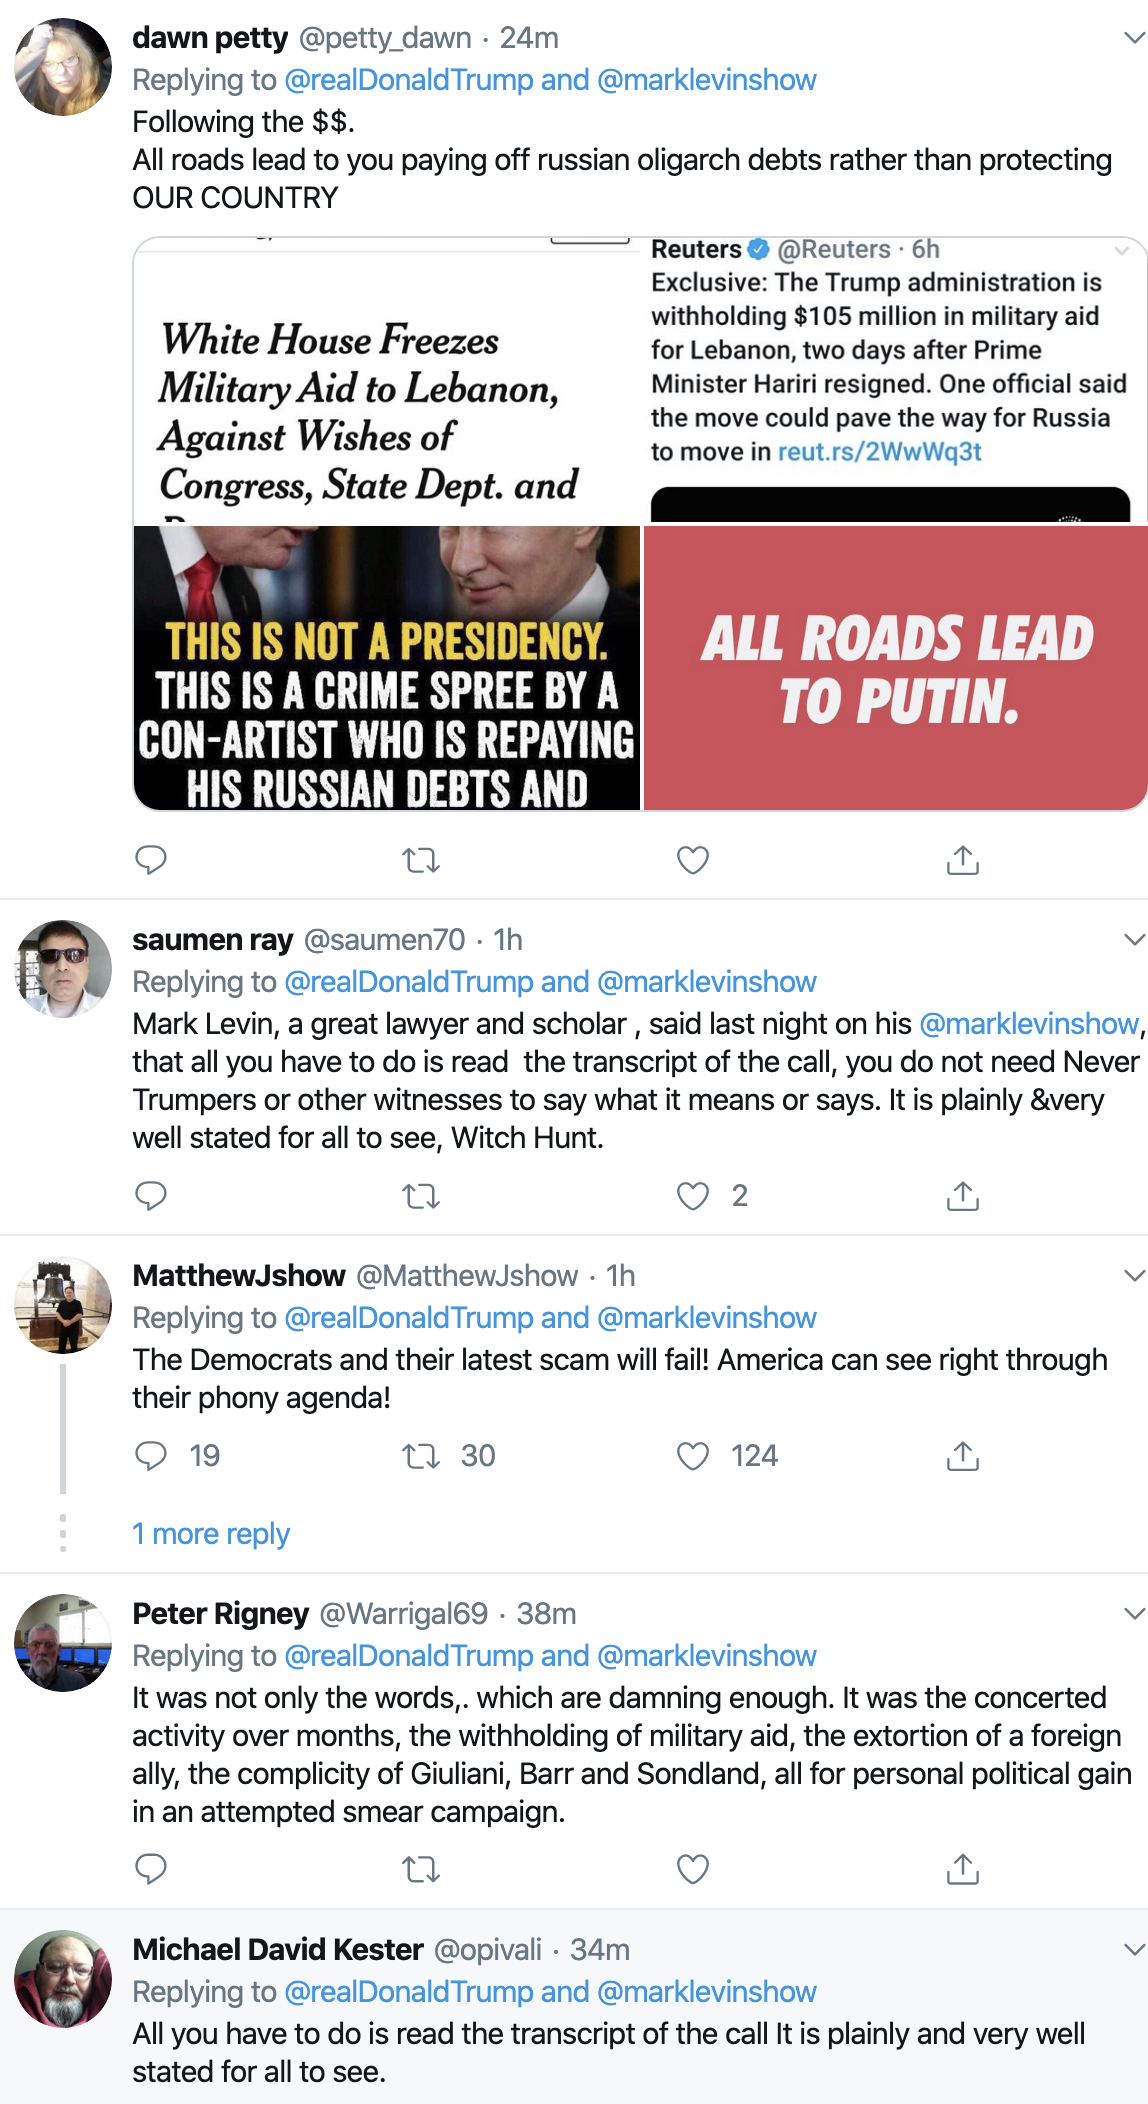 Screen-Shot-2019-11-04-at-7.10.11-AM Trump's Monday AM Twitter Freakout Is Way Crazier Than Usual (IMAGES) Conspiracy Theory Corruption Crime Domestic Policy Donald Trump Election 2020 Featured Impeachment Investigation National Security Politics Russia Terrorism Top Stories Violence White Supremacy